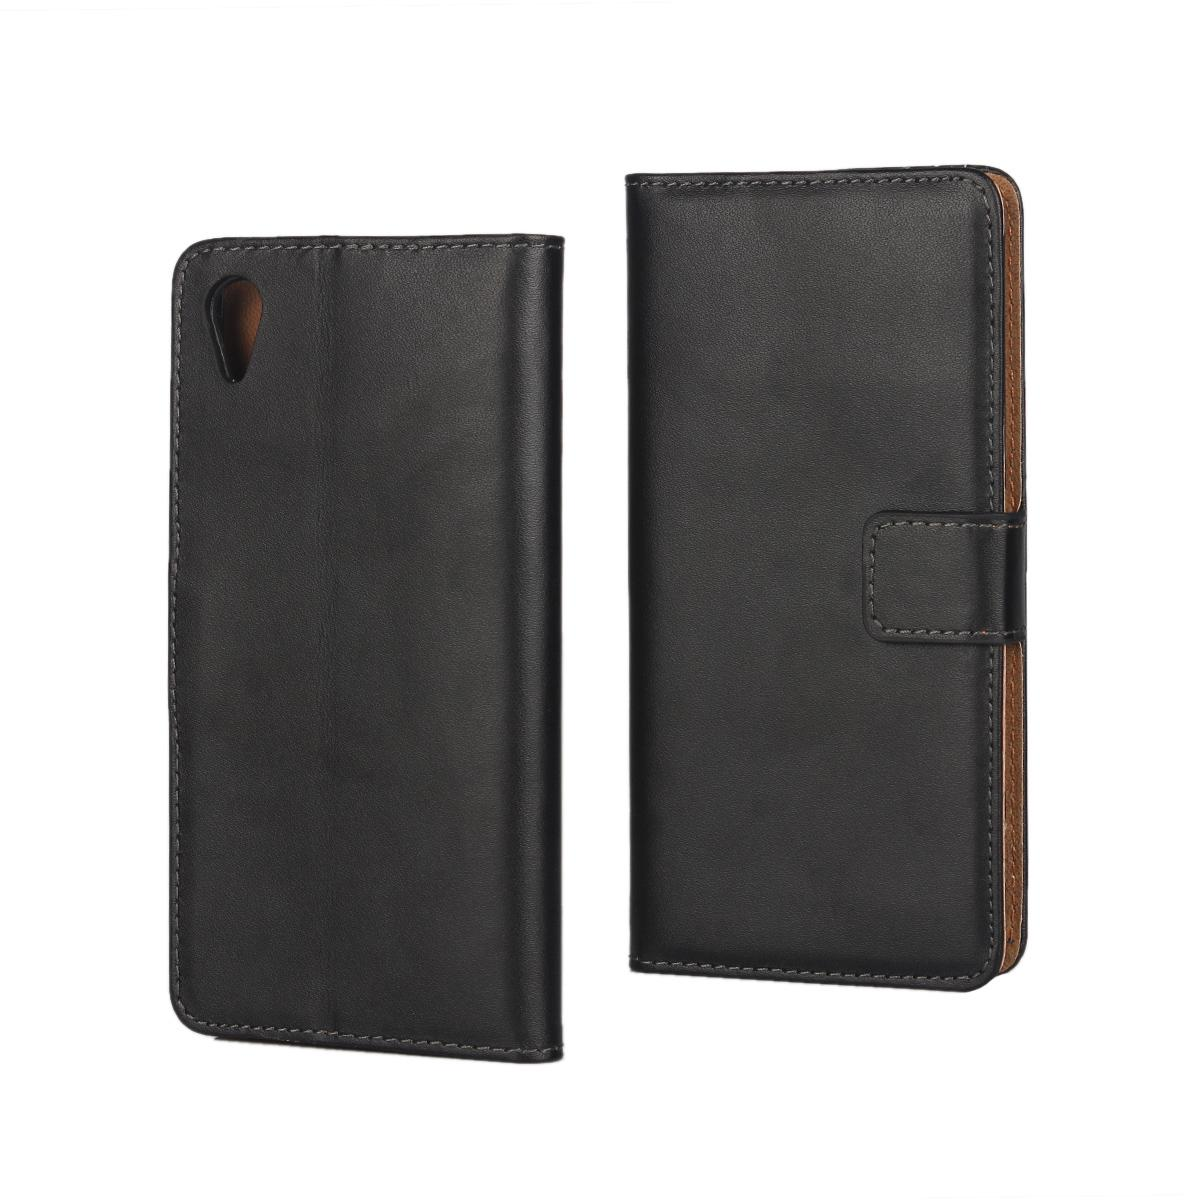 Genuine Real Wallet Leather Case For Sony Xperia X/ XA/ X Performance XP Flip Money Pocket Cover Purse Credit ID Card Holder Pouches